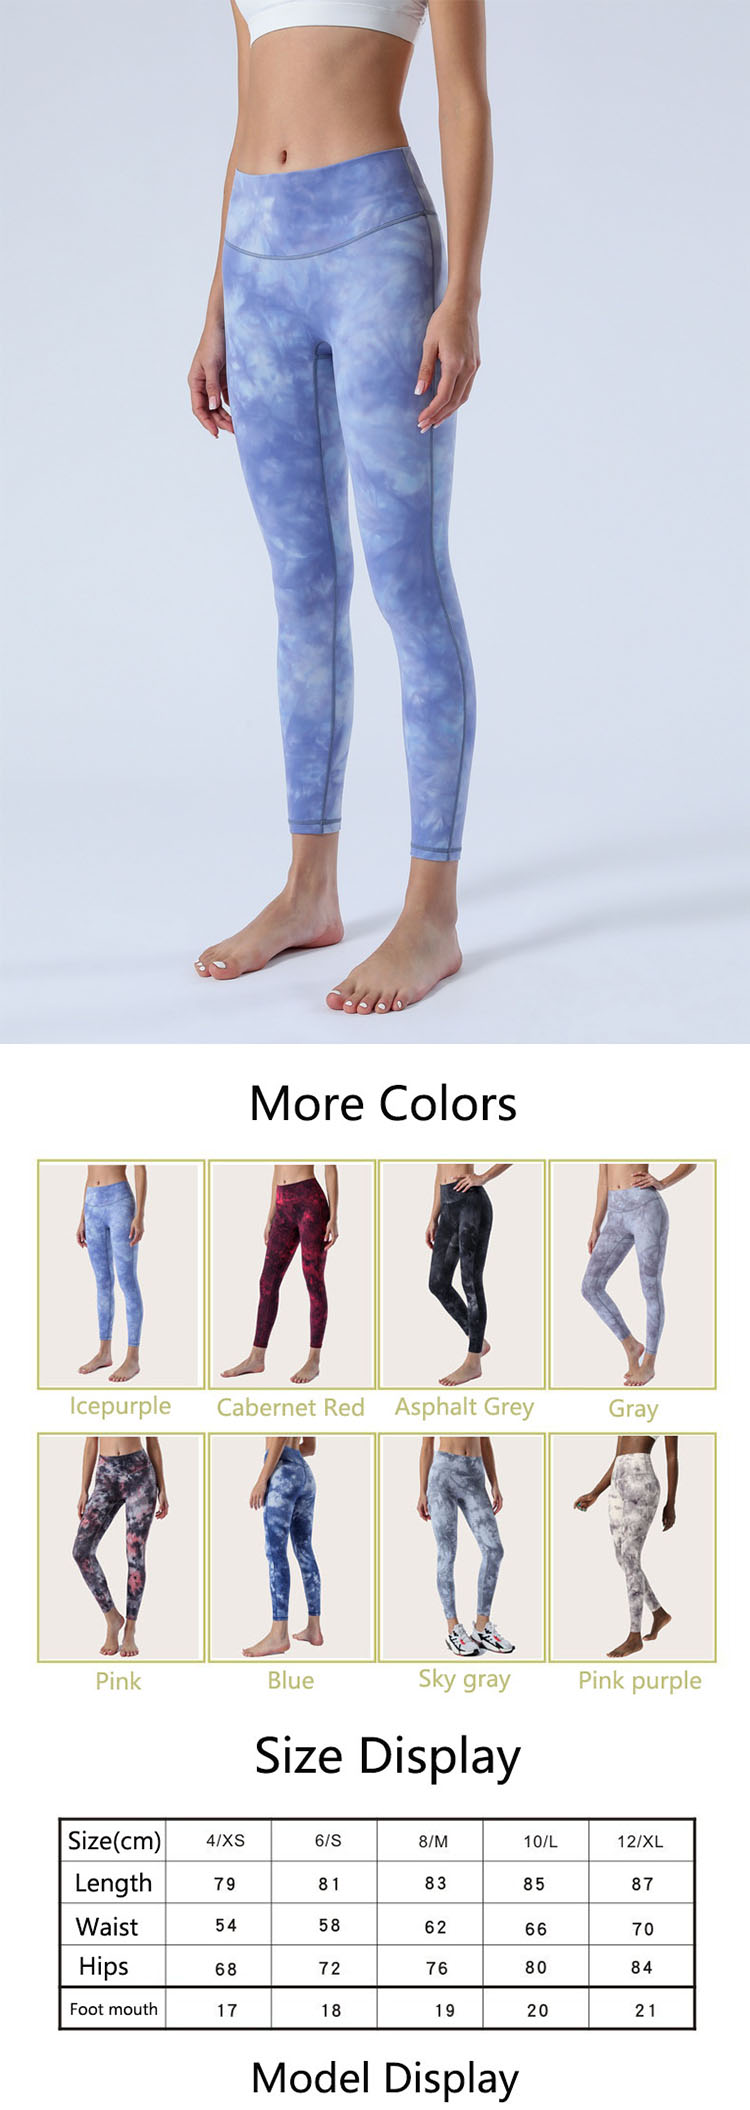 The effect of seam free leggings splitting from one point to the surroundings forms a fission texture.